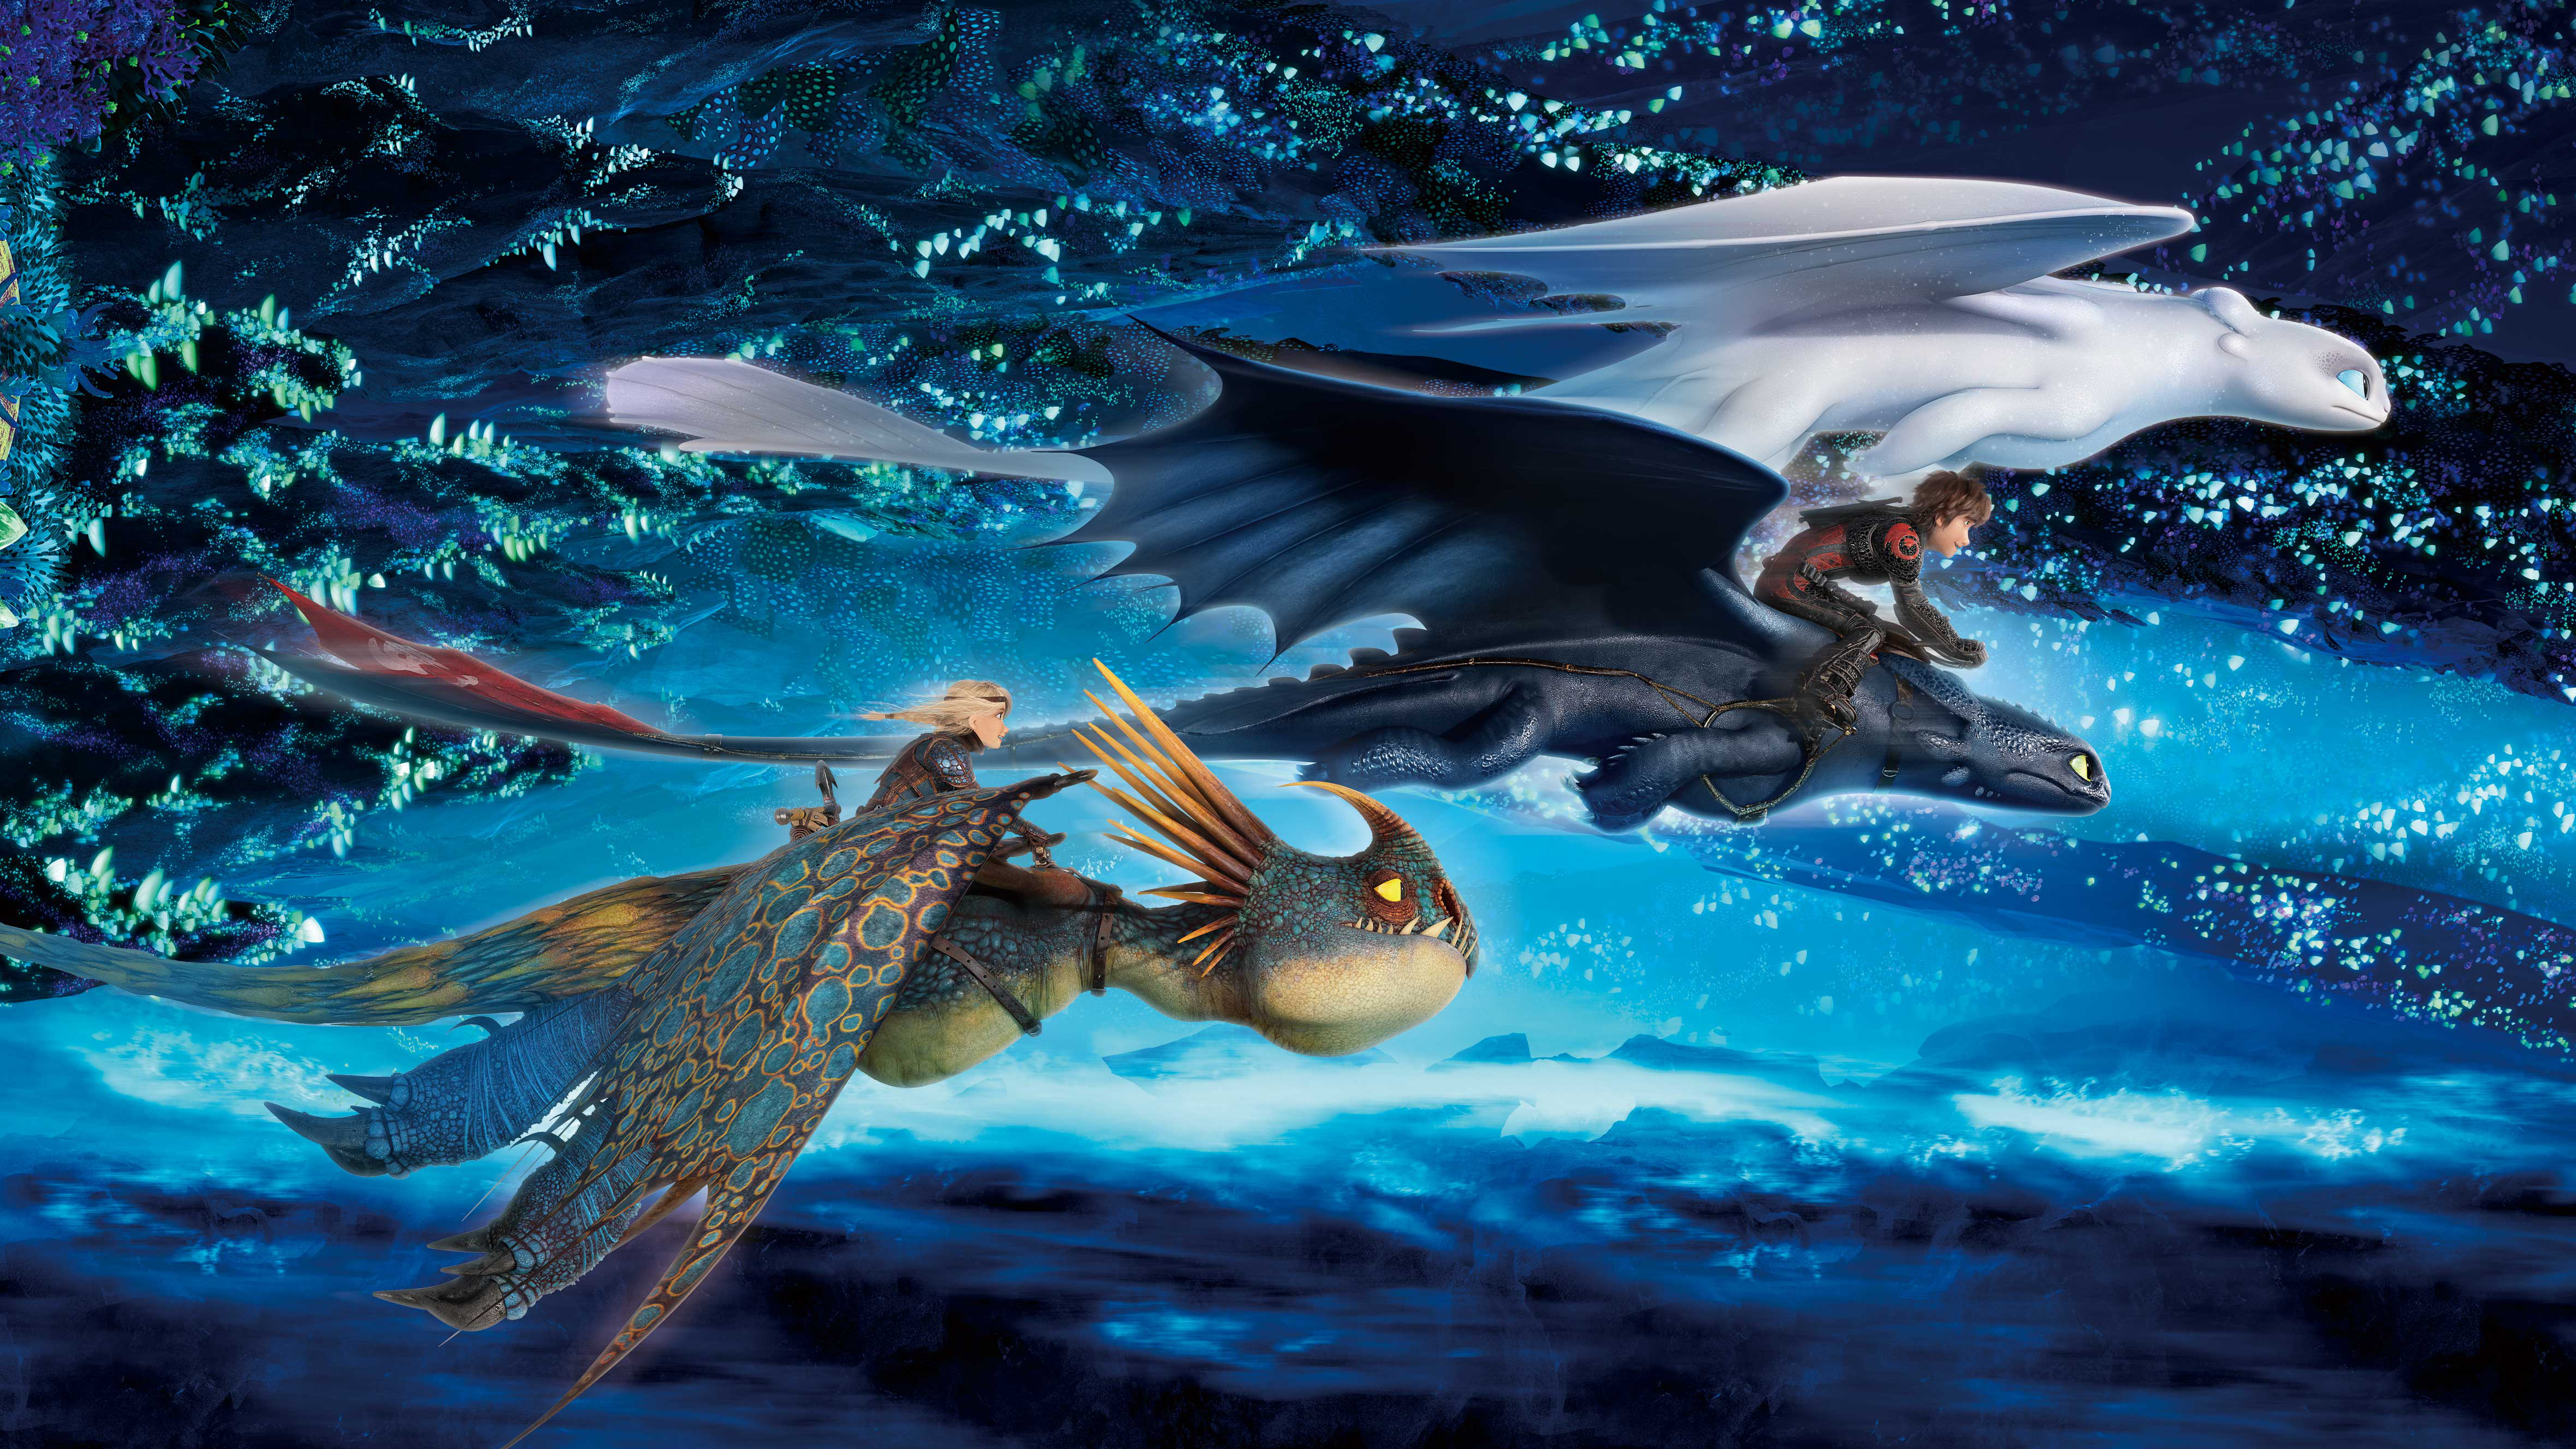 How To Train Your Dragon The Hidden World Imax, HD Movies ...